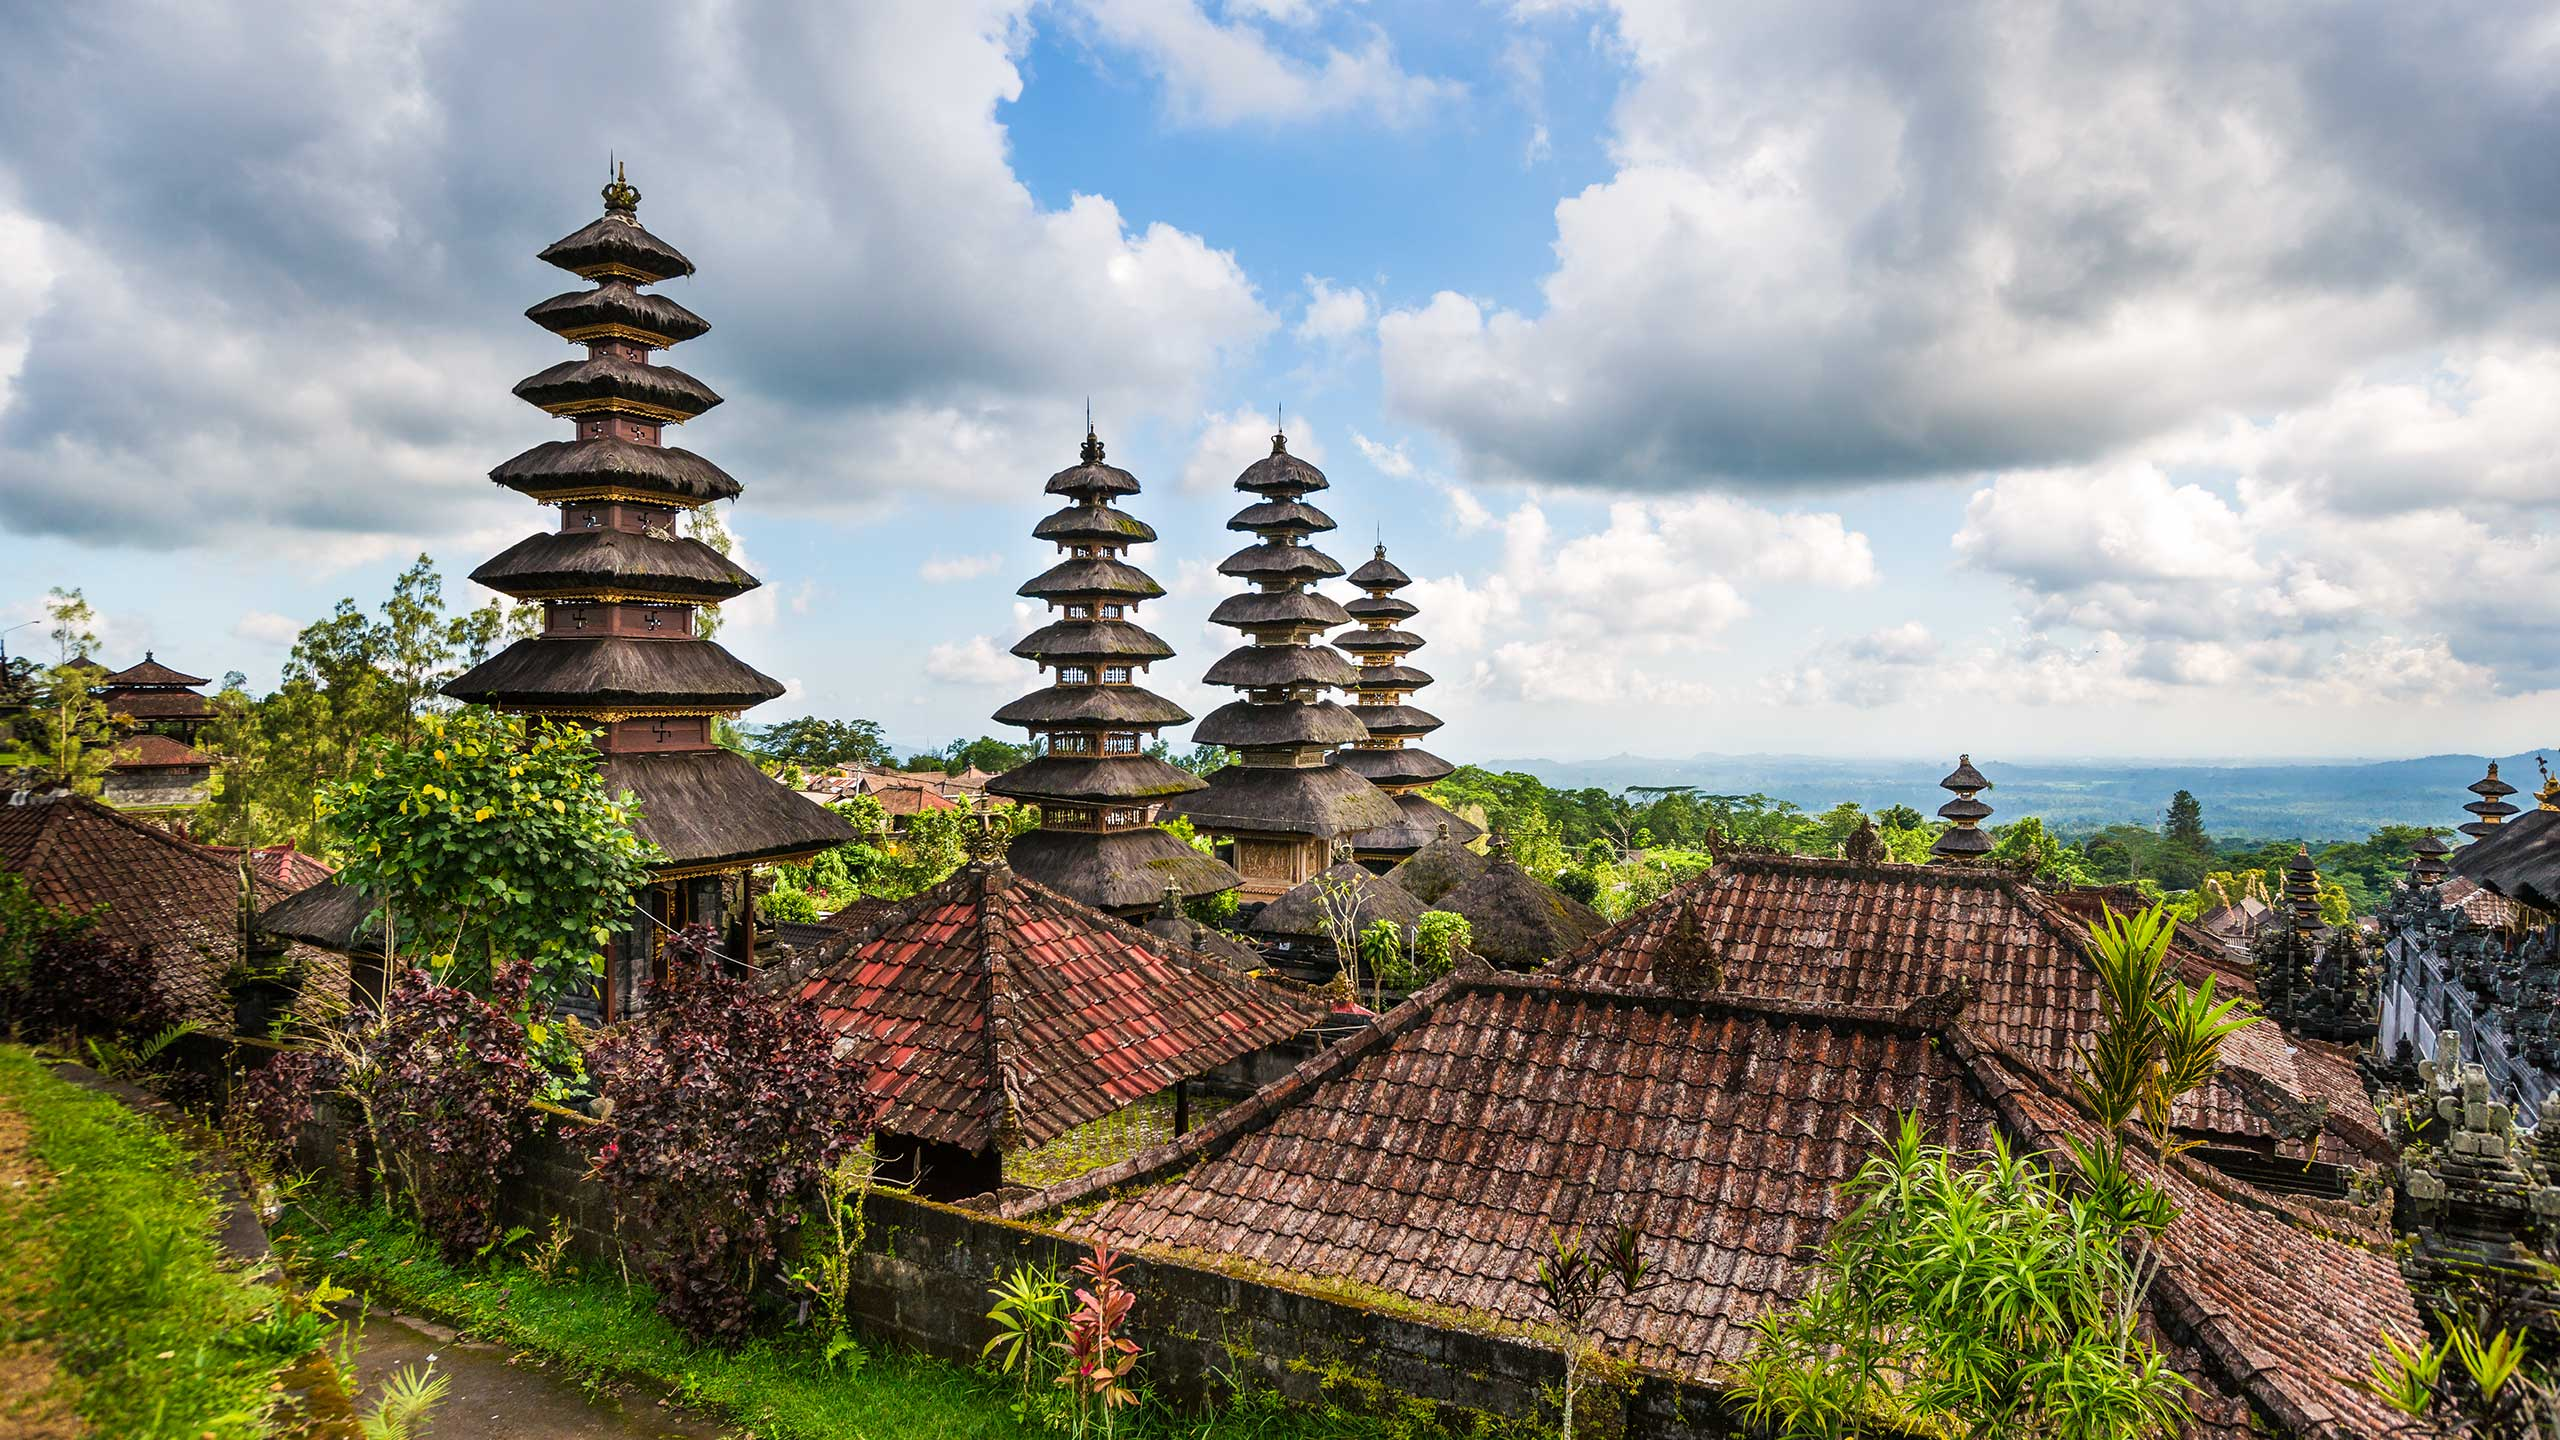 Roofs of Besakih Temple on Bali in Indonesia